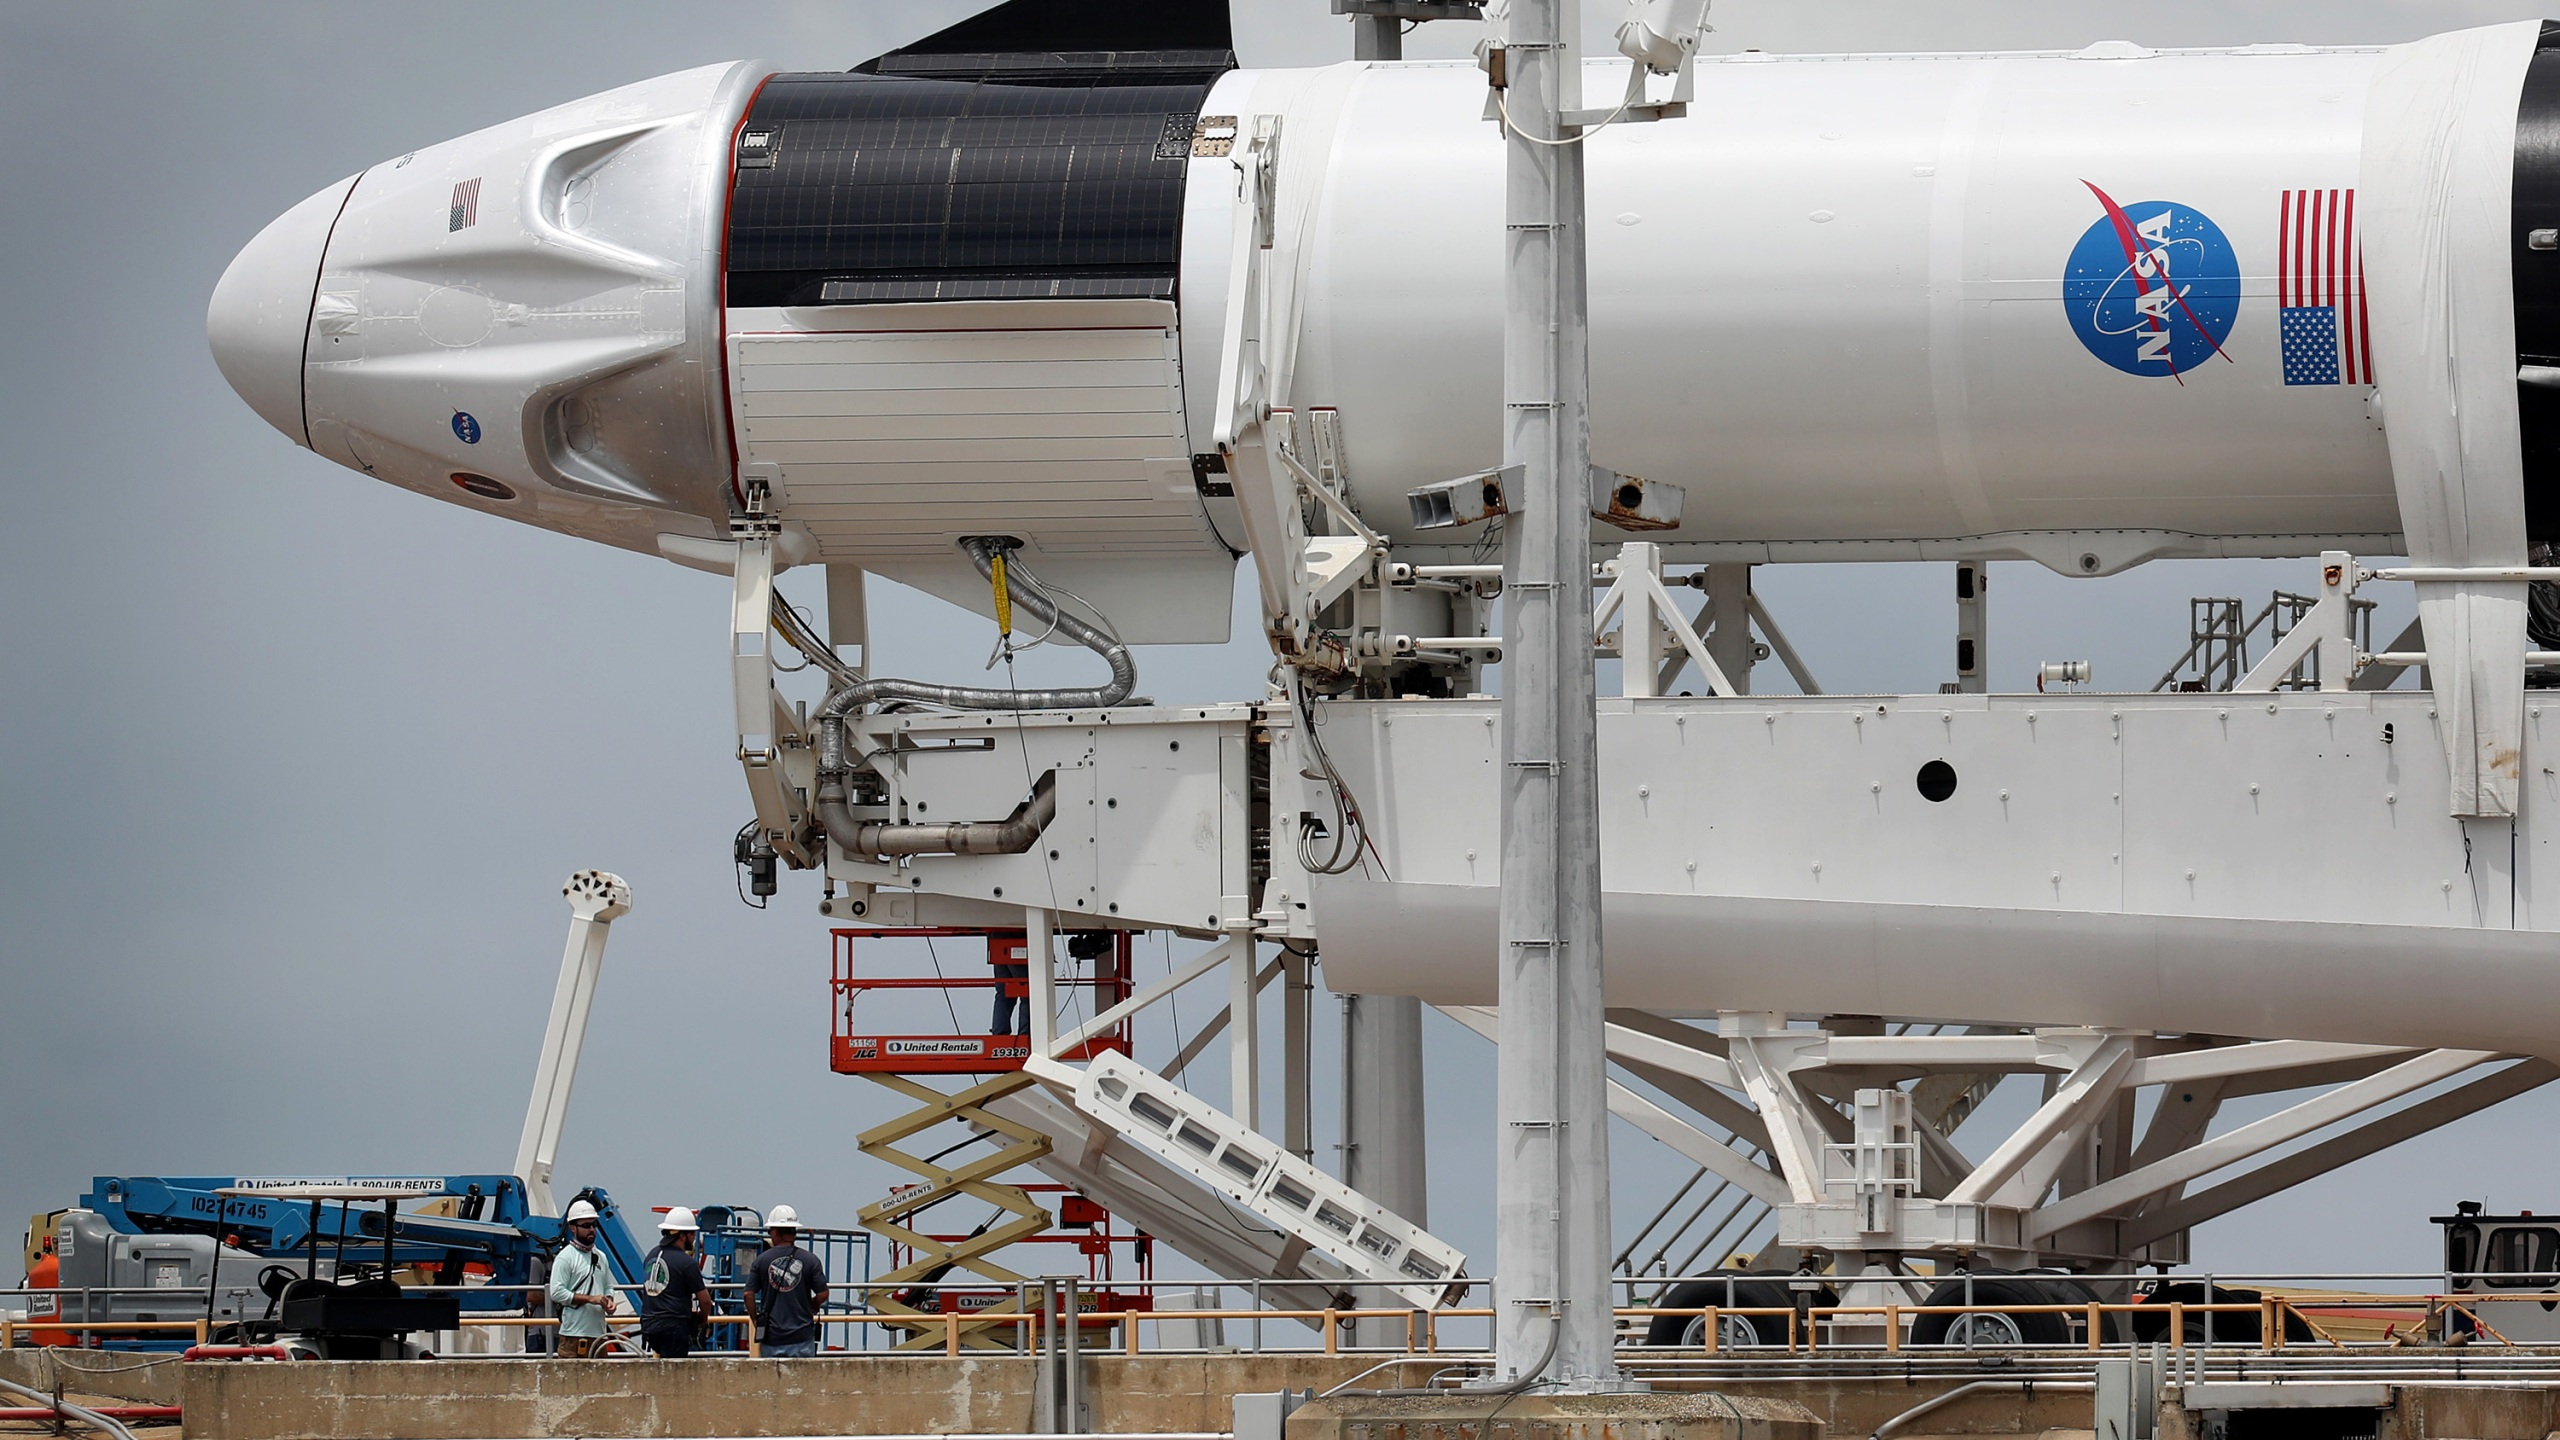 Workers prepare the SpaceX Falcon 9 rocket with the Crew Dragon spacecraft at the Kennedy Space Center on May 26, 2020 in Cape Canaveral, Florida. (Joe Raedle/Getty Images)